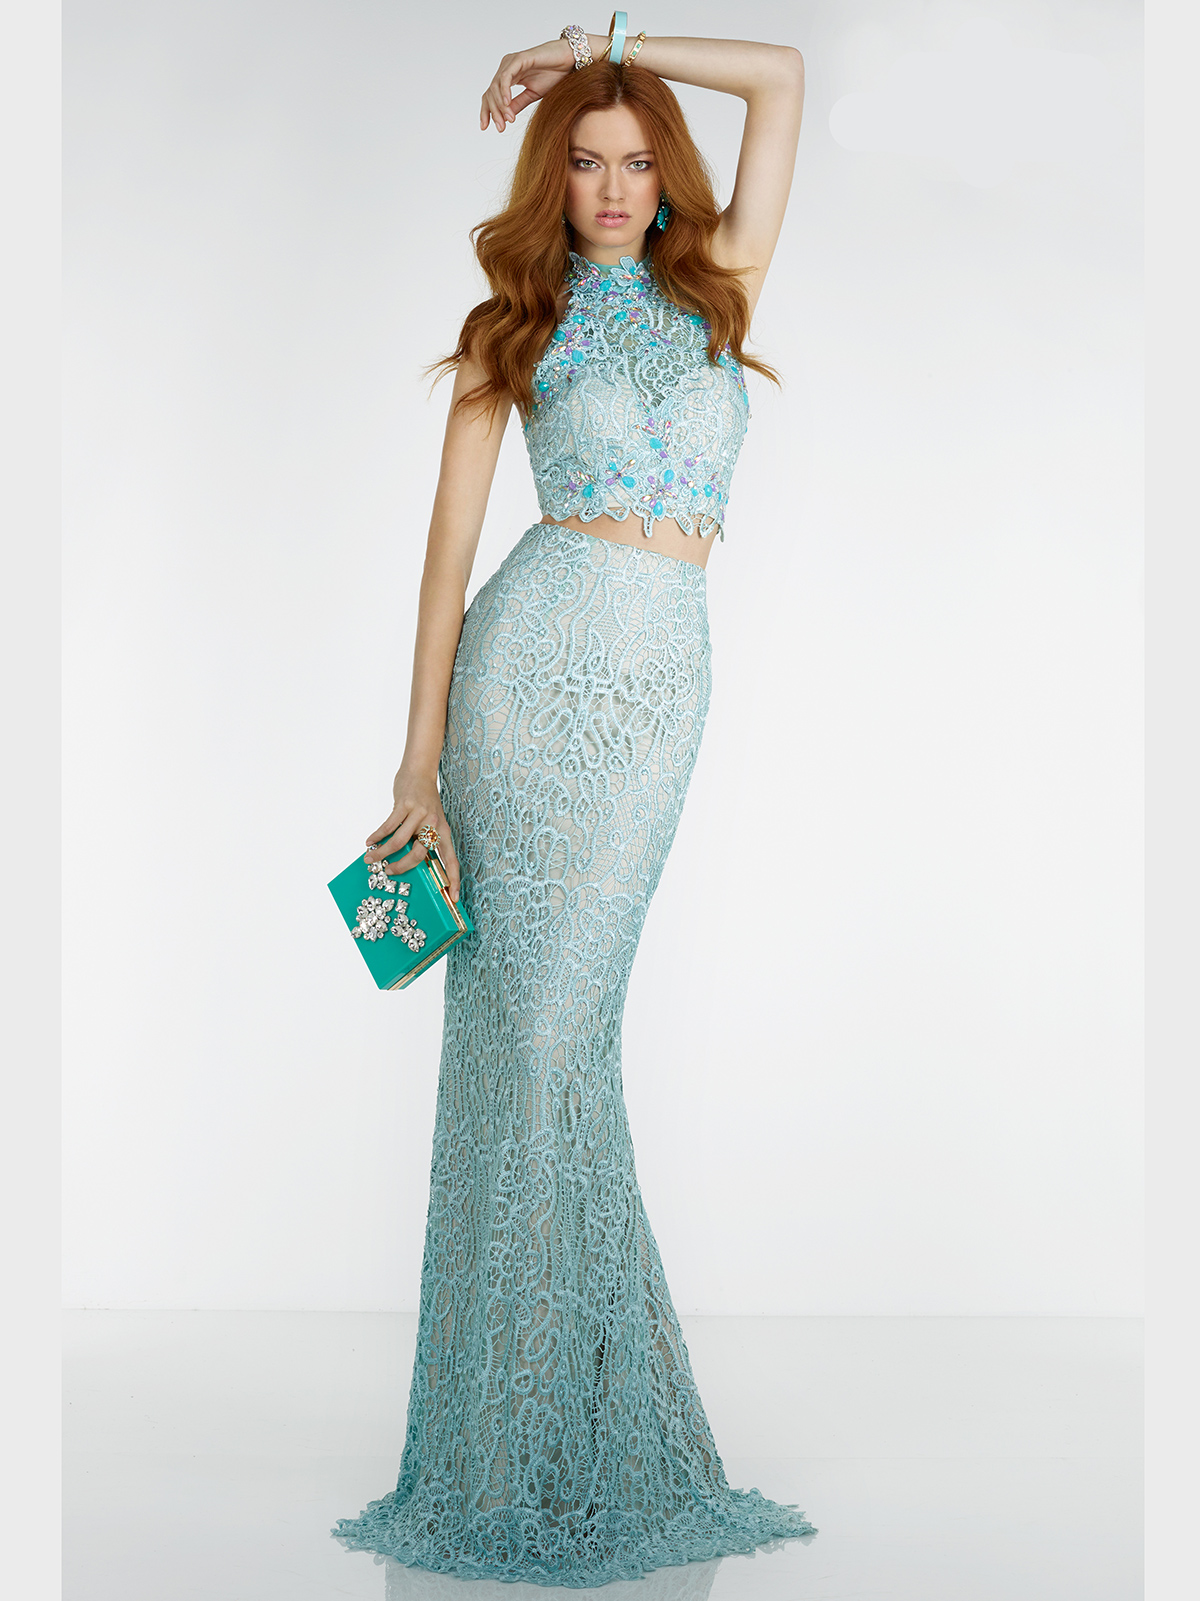 Prom dresses under the sea - Dress style